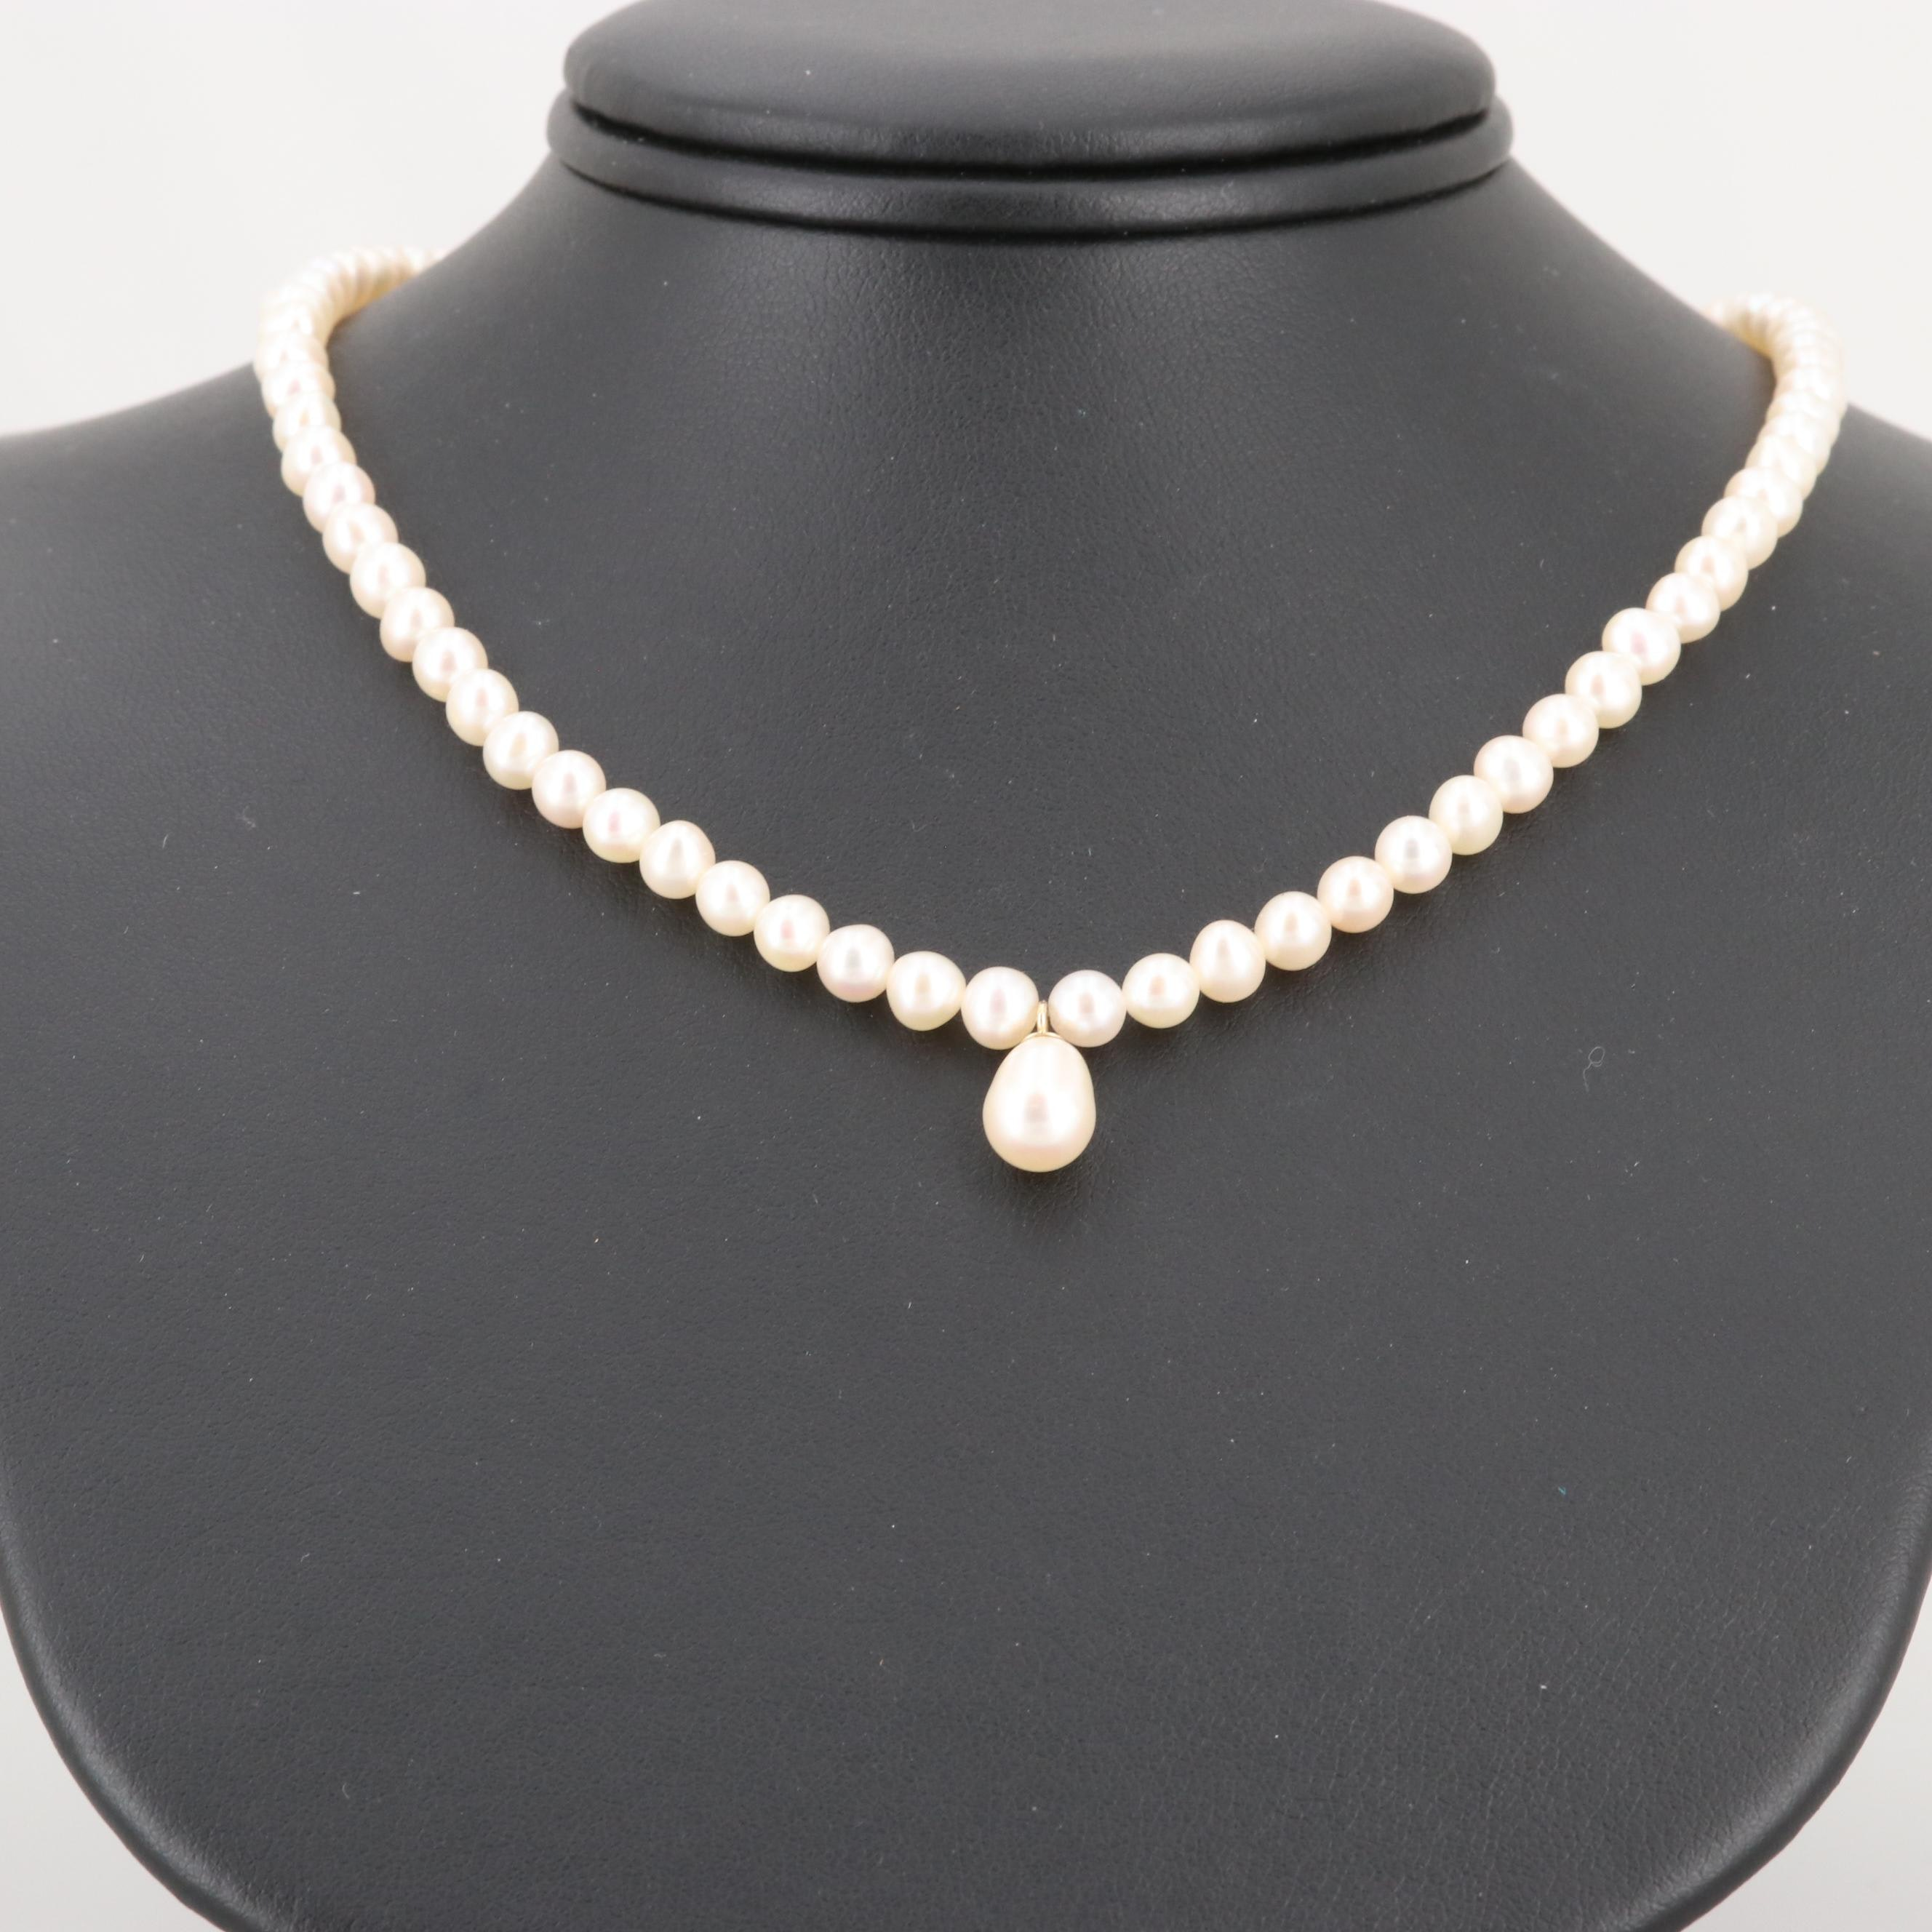 Cultured Pearl Beaded Necklace with 14K Yellow Gold Clasp